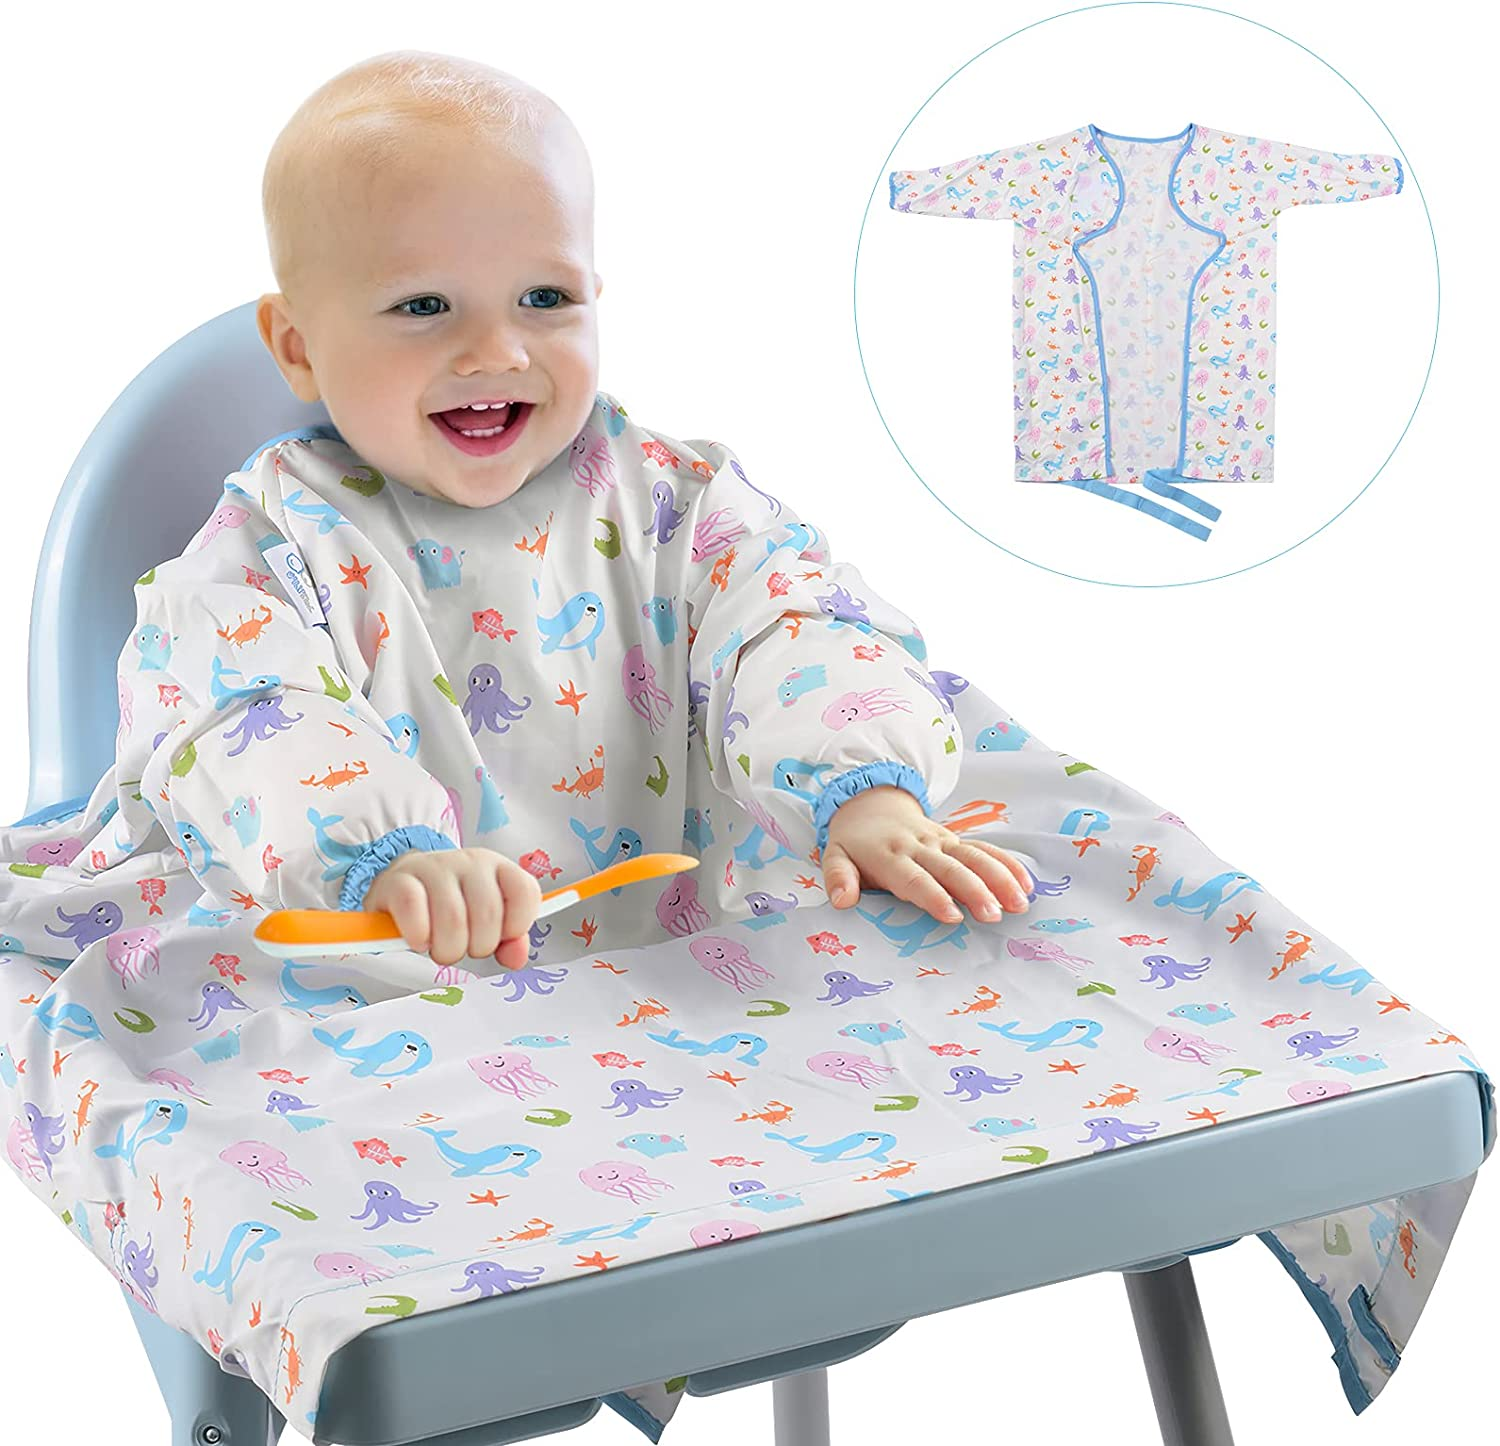 XCSOURCE Long Sleeved Bib Spasm price for latest Babies Toddlers 6-24 and Months